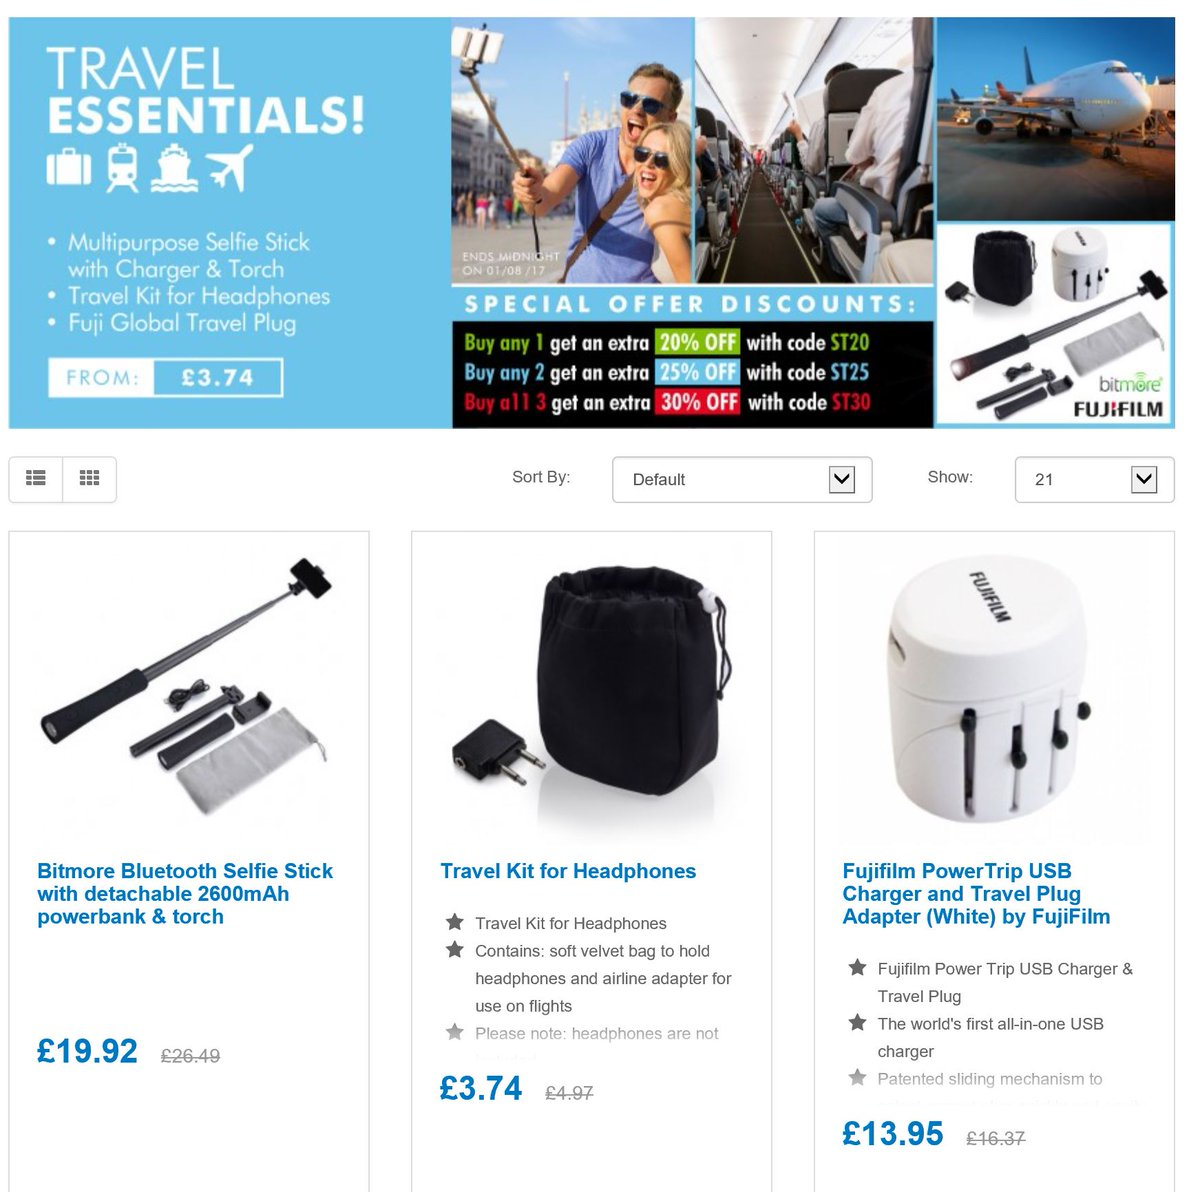 Save MIn 20% off Travel essentials for the Holidays  http:// ow.ly/bH3O30dT5sO  &nbsp;   #RT #Follow #Win  share #multibuy any 2/3 25/30% off <br>http://pic.twitter.com/bjzPtMvpTZ